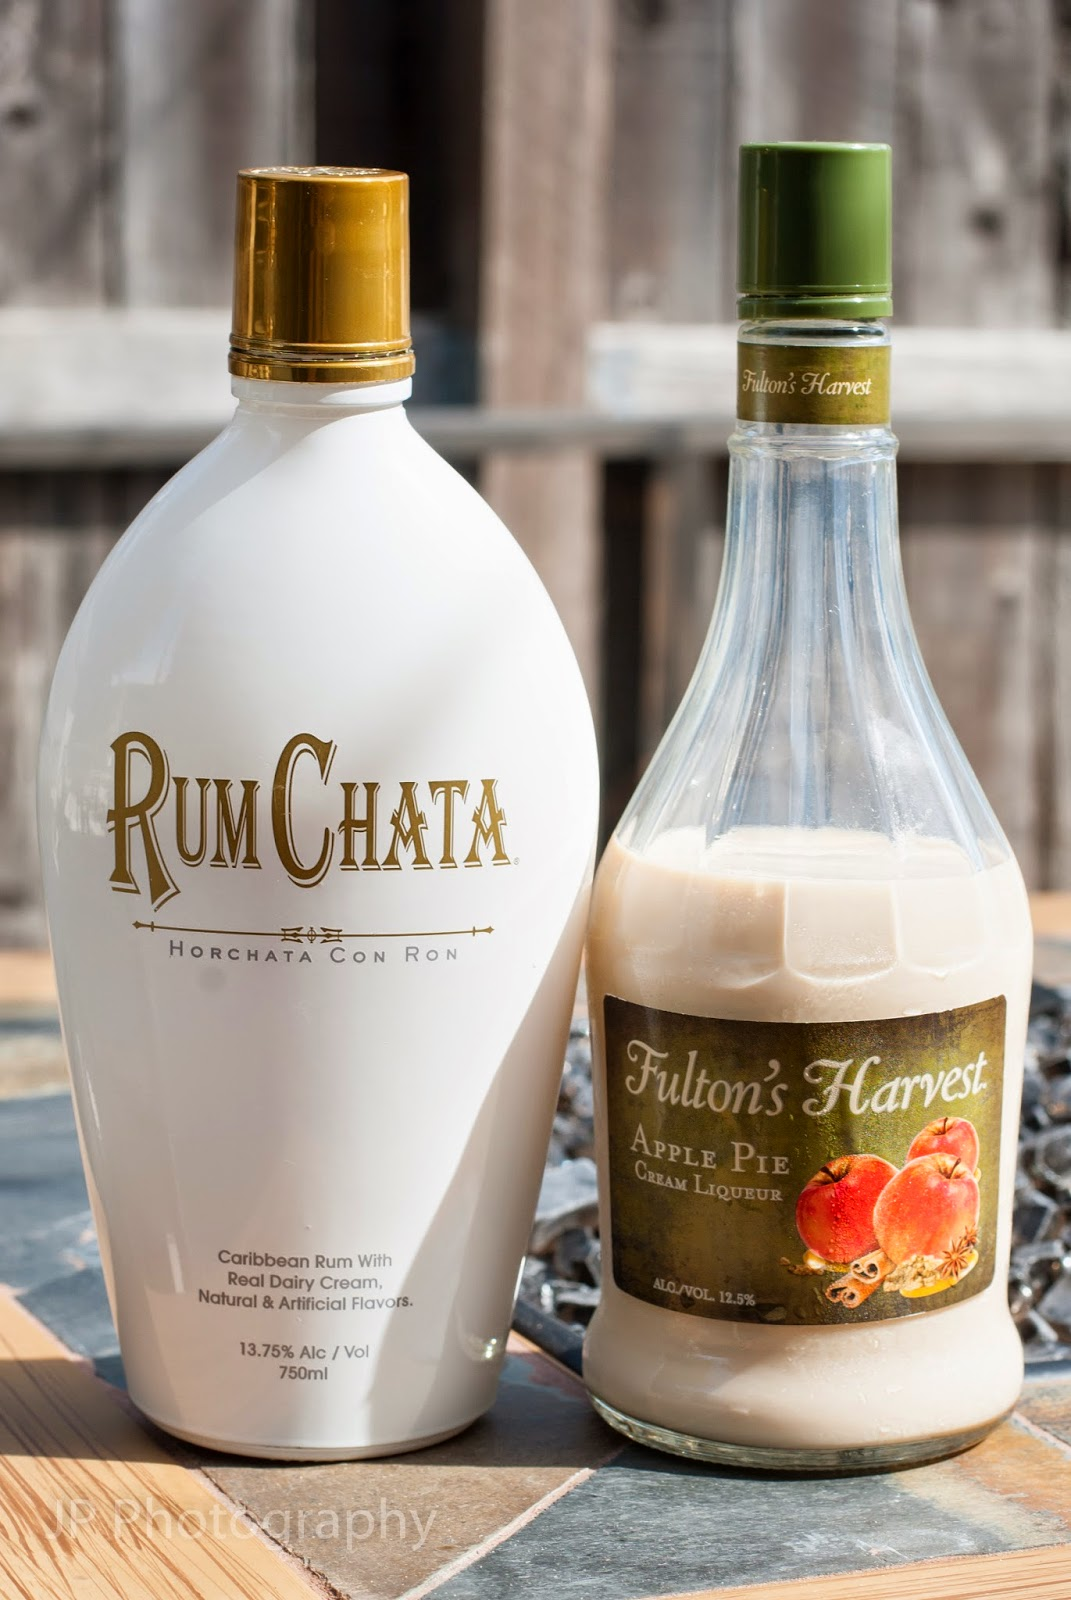 apple pie chata cocktail, apple pie liqueur, rum chata